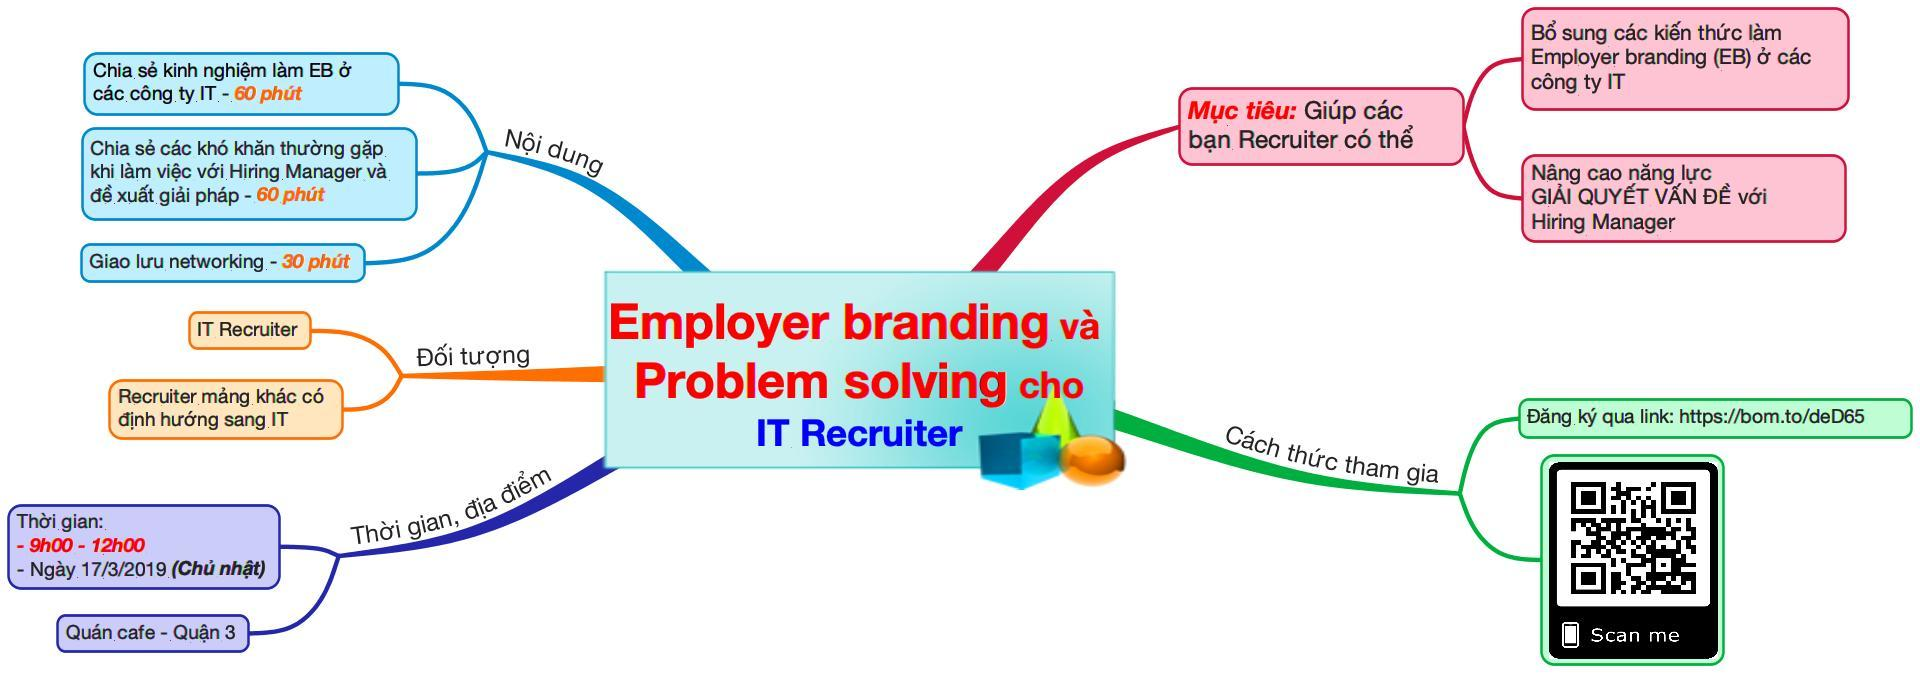 [HCM] Cafe Sharing 05: Employer Branding & Problem Solving cho IT Recruiter